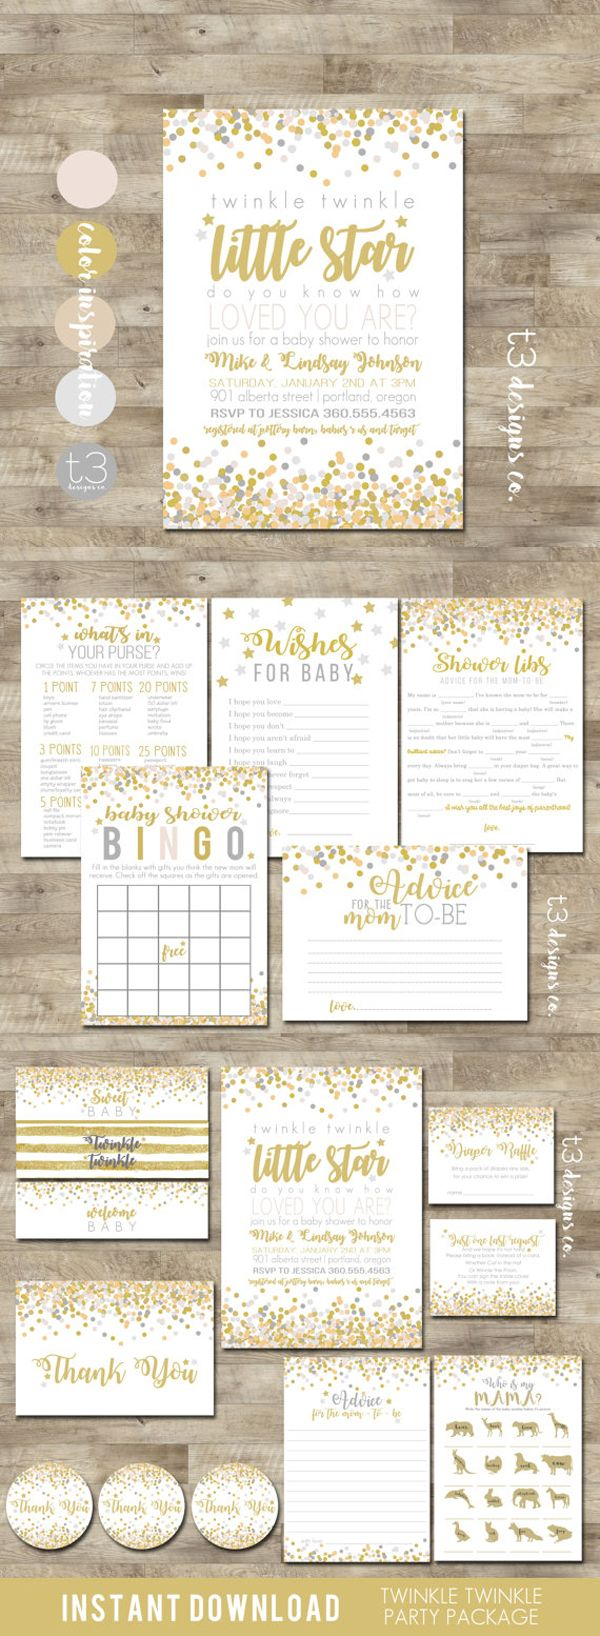 Twinkle Twinkle Little Star Baby Shower Invitation Suite, Gender Neutral Baby Shower Ideas, Baby Shower Invite, Gold, Rose Gold, Silver, Pink, Grey, Baby Shower Games, Advice for the Mom to be Printable Baby Shower games, Thank You's and Invitations #babyshower #babyshowers #babies #pregnancy #genderneutral #babyboy #babygirl